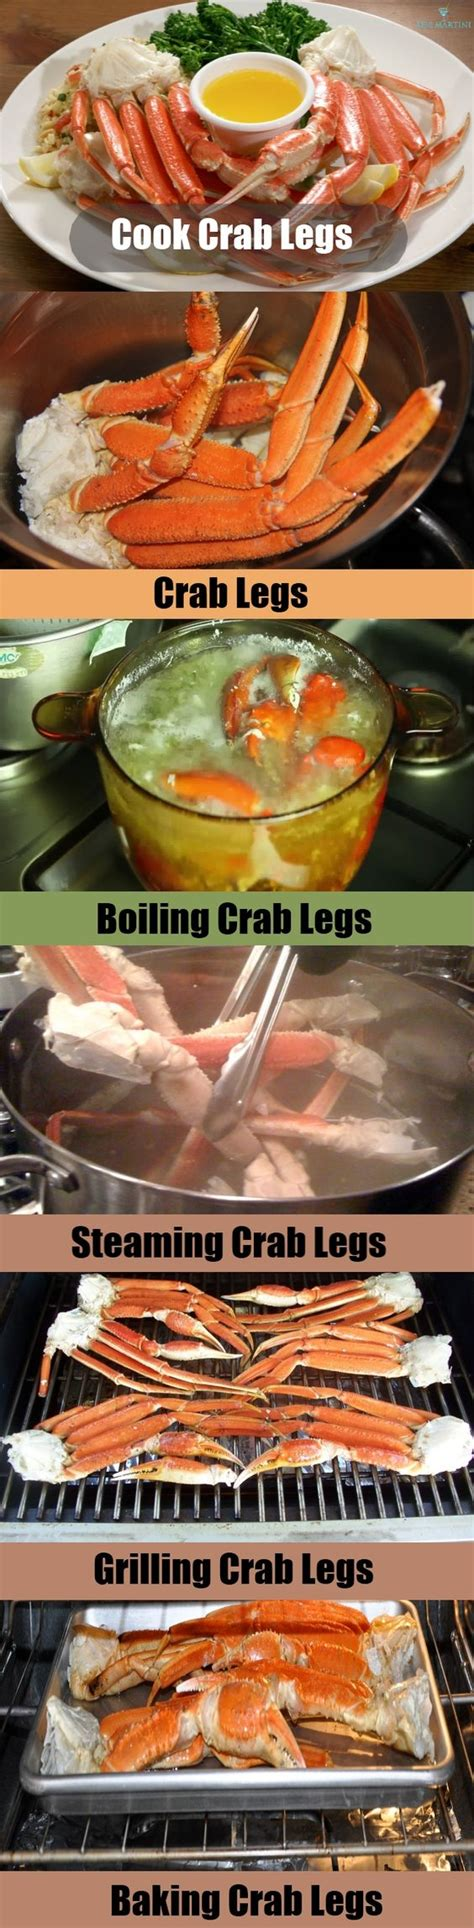 how to cook crab legs crab legs how to cook and crabs on pinterest